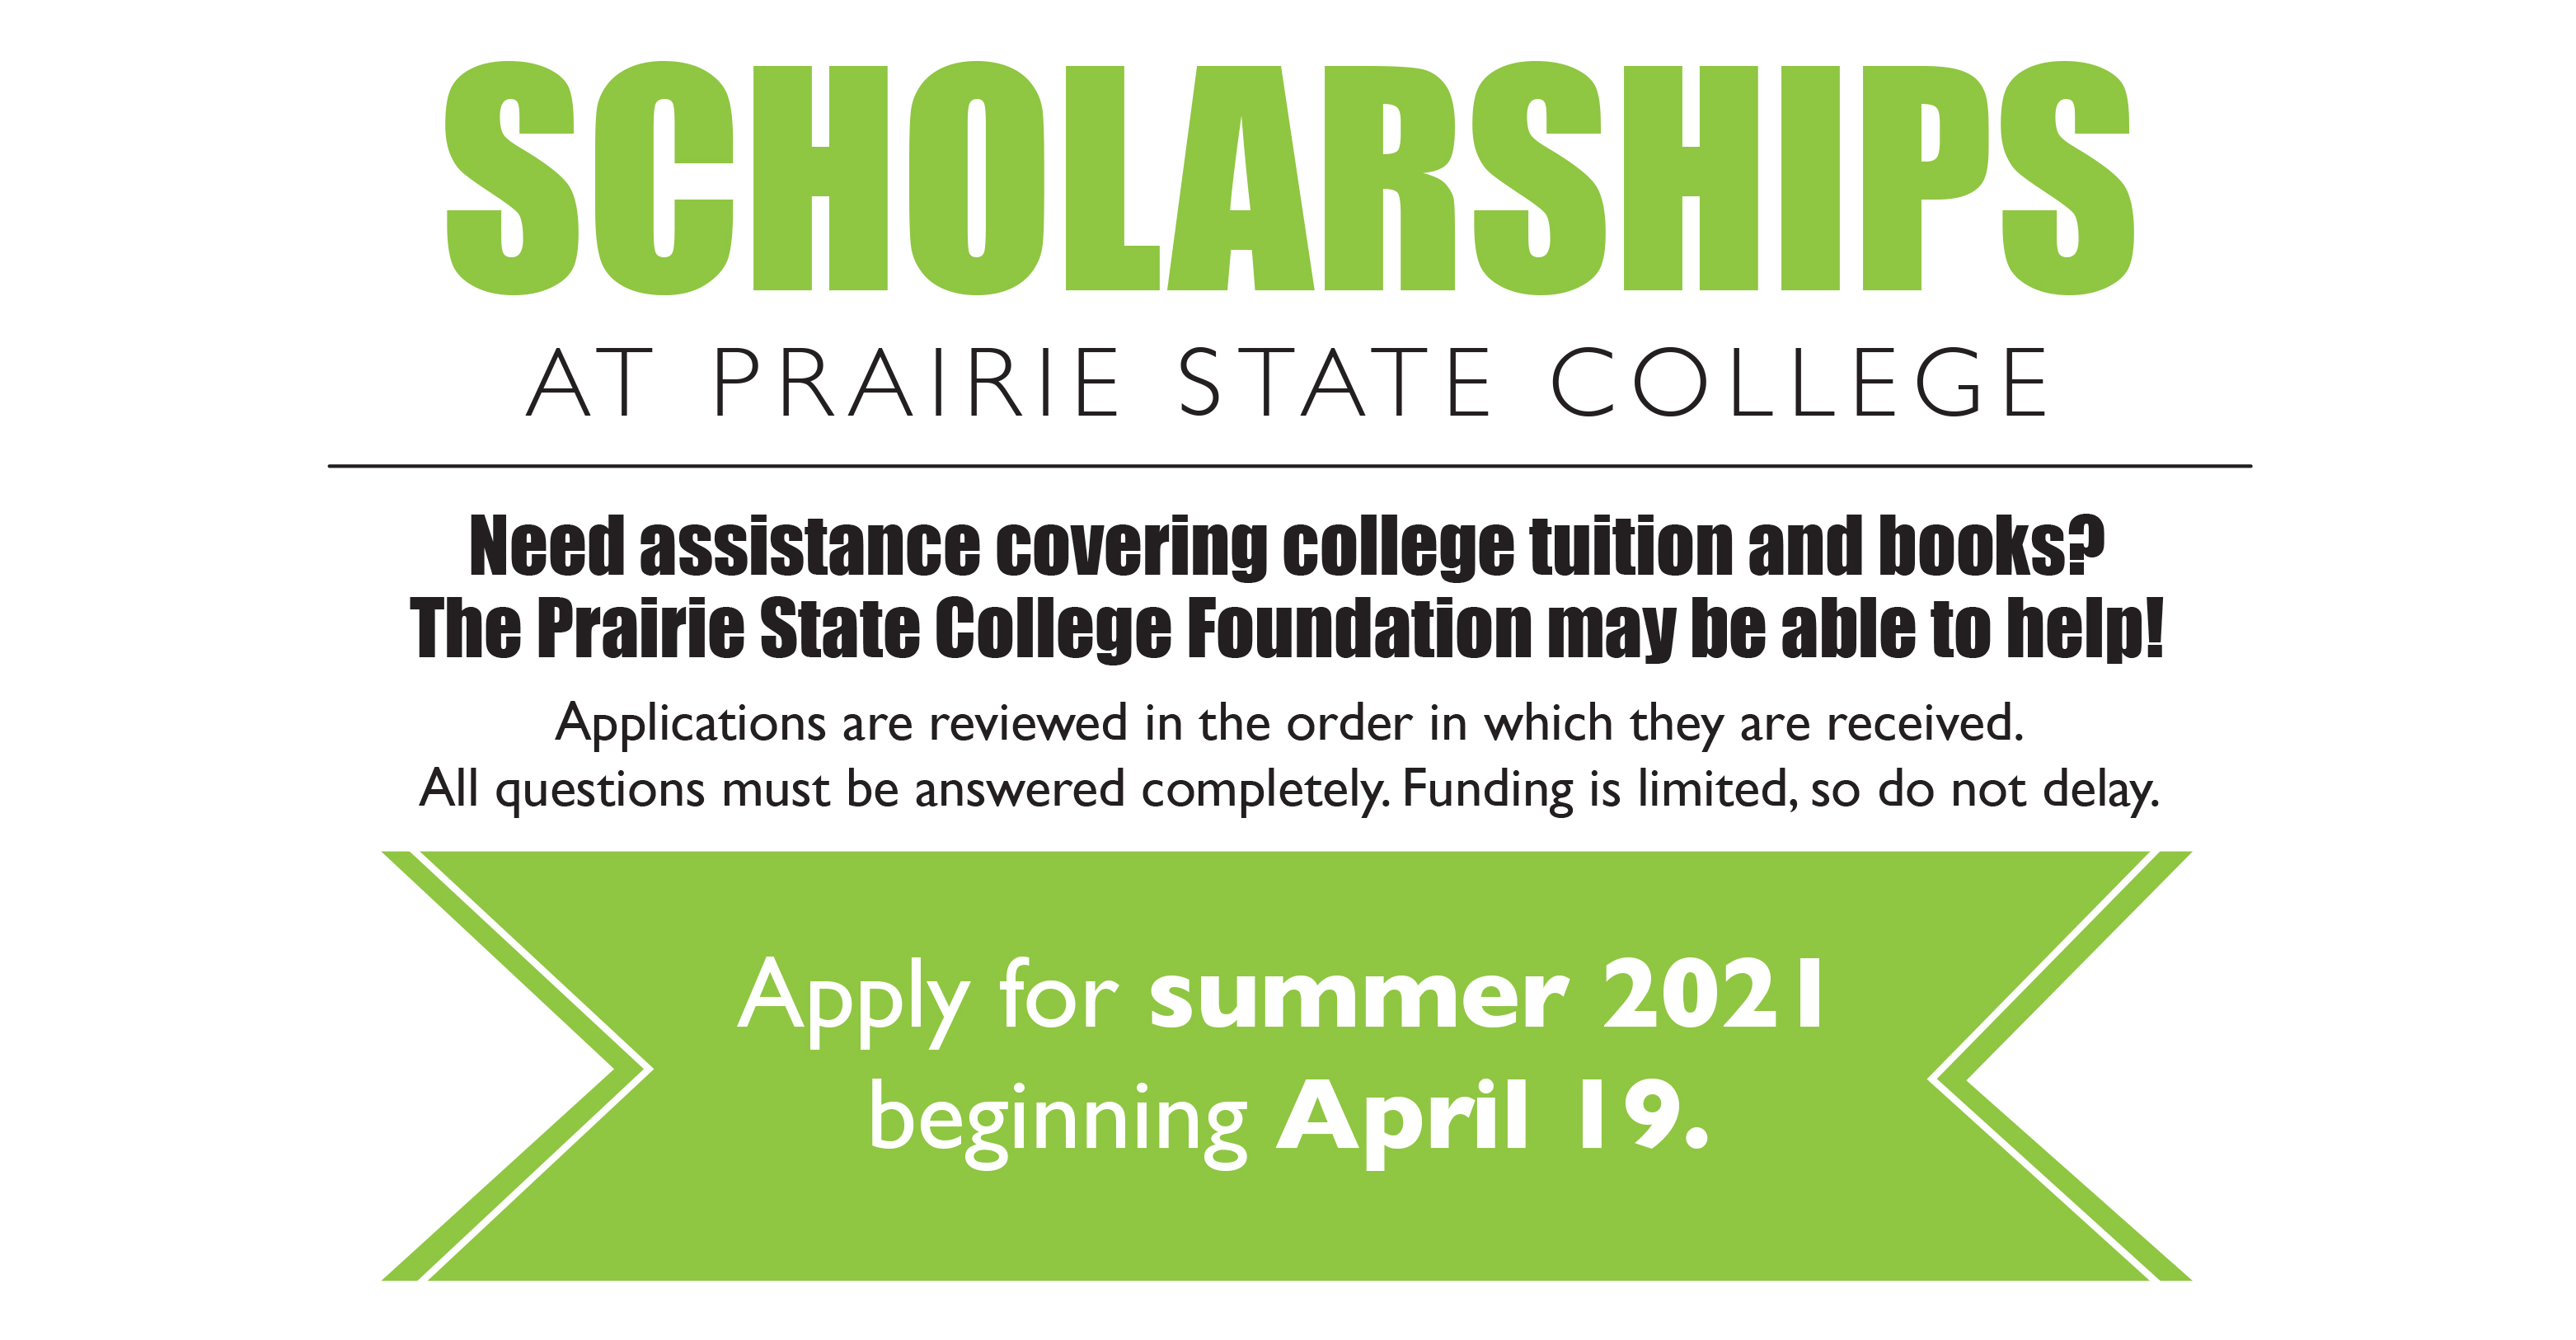 Apply for Summer 2021 scholarships beginning on April 19th